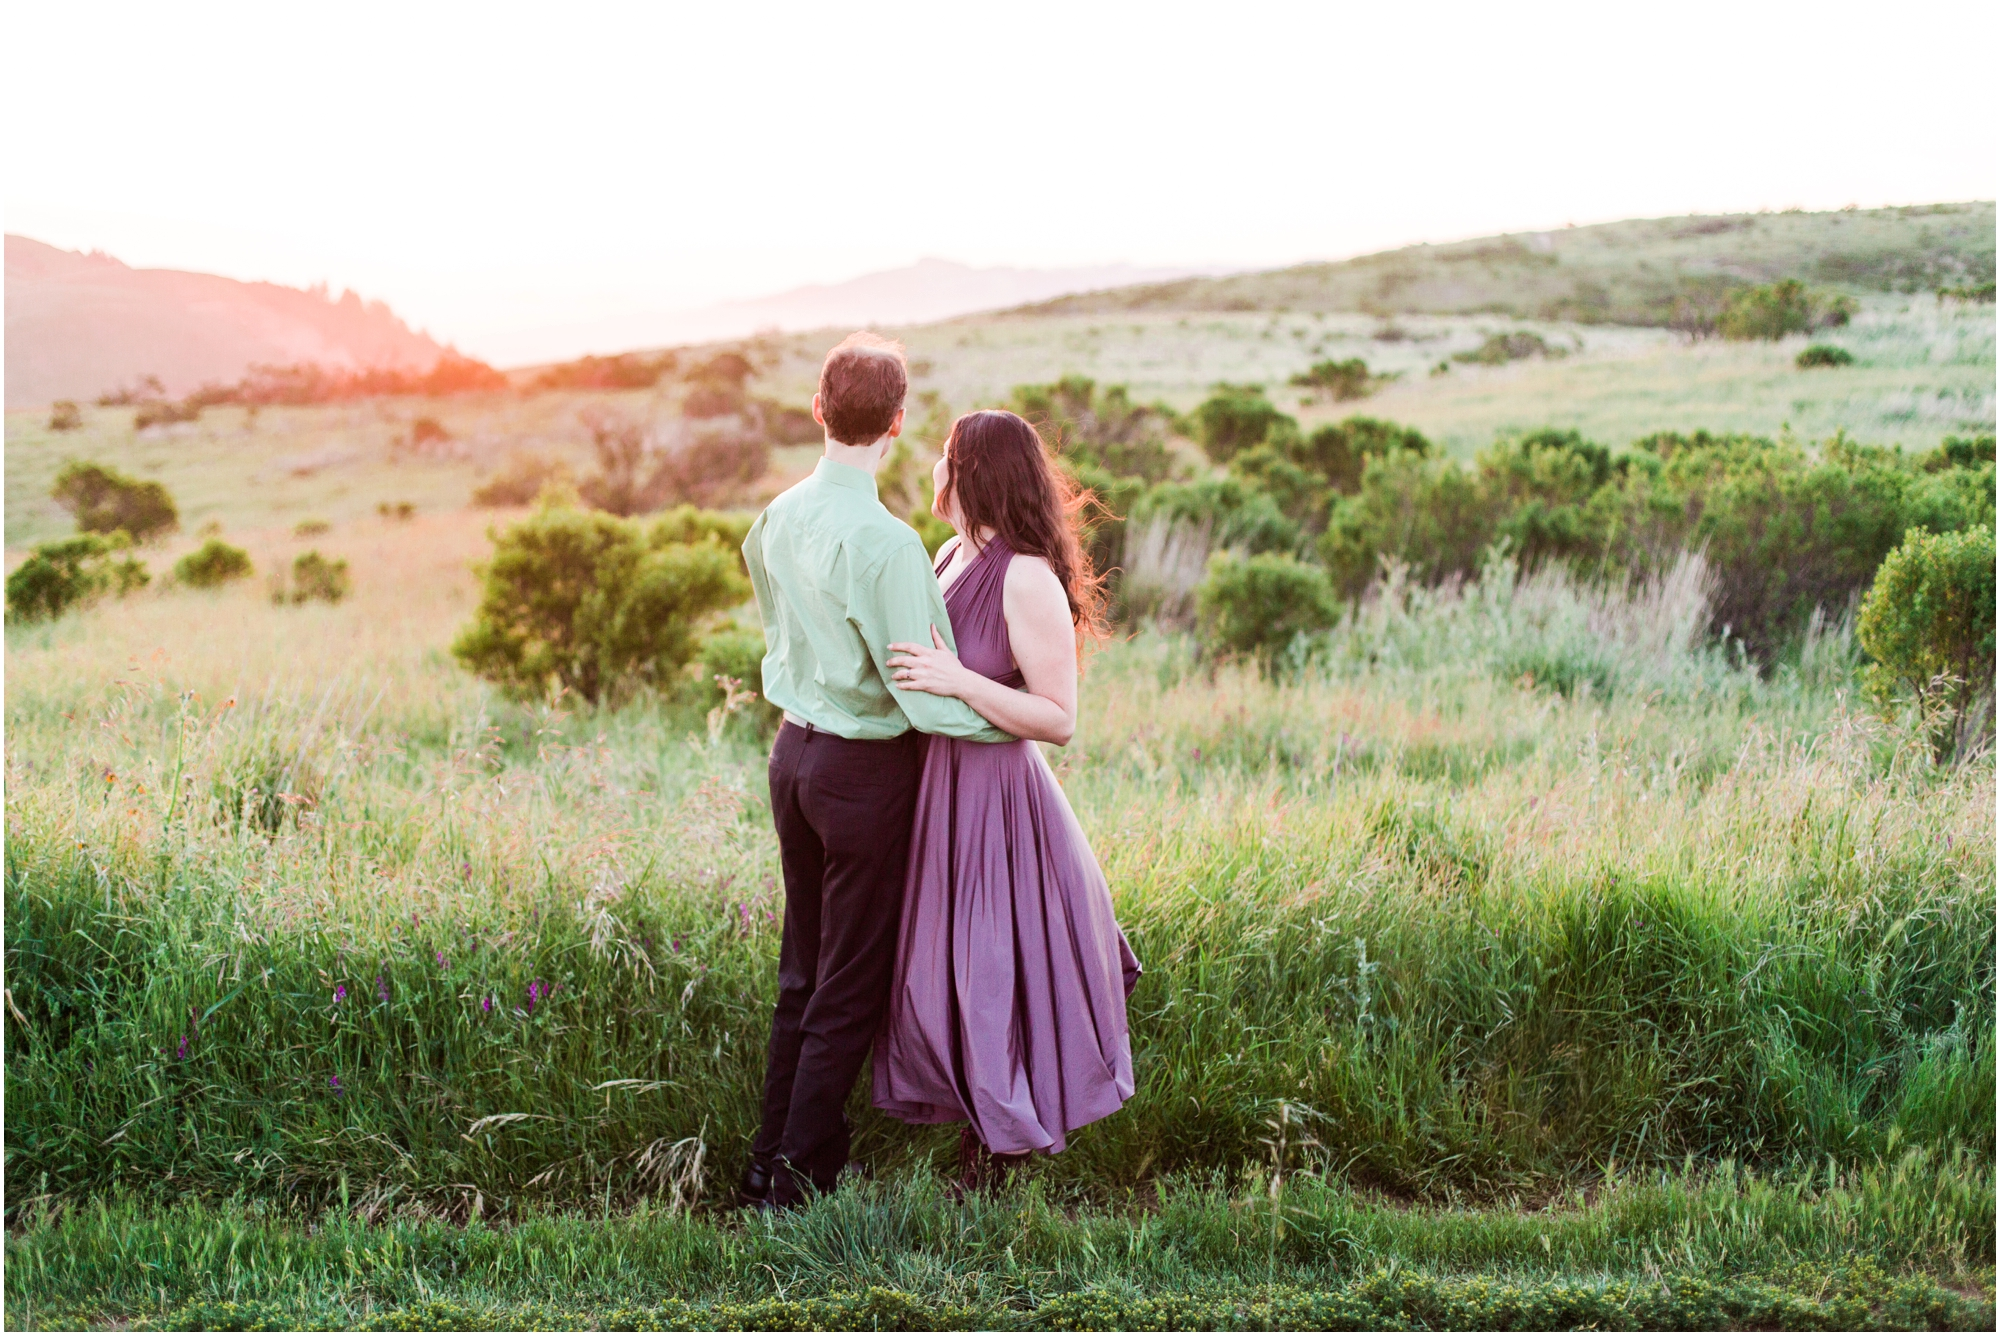 Russian Ridge engagement pictures by Briana Calderon Photography_1634.jpg